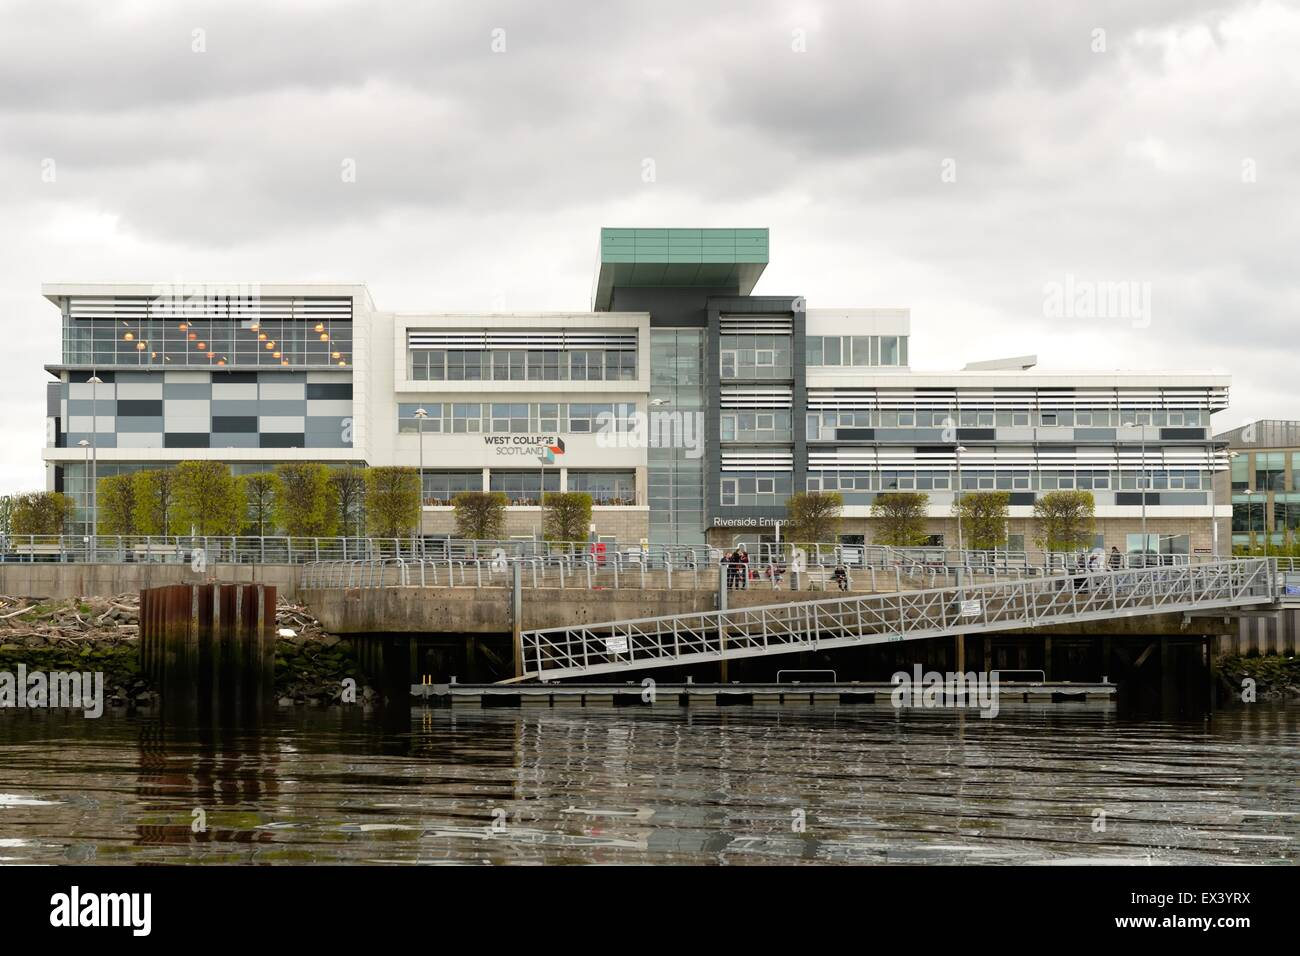 West College Scotland in Clydebank, Glasgow, UK with access to the river Clyde - Stock Image